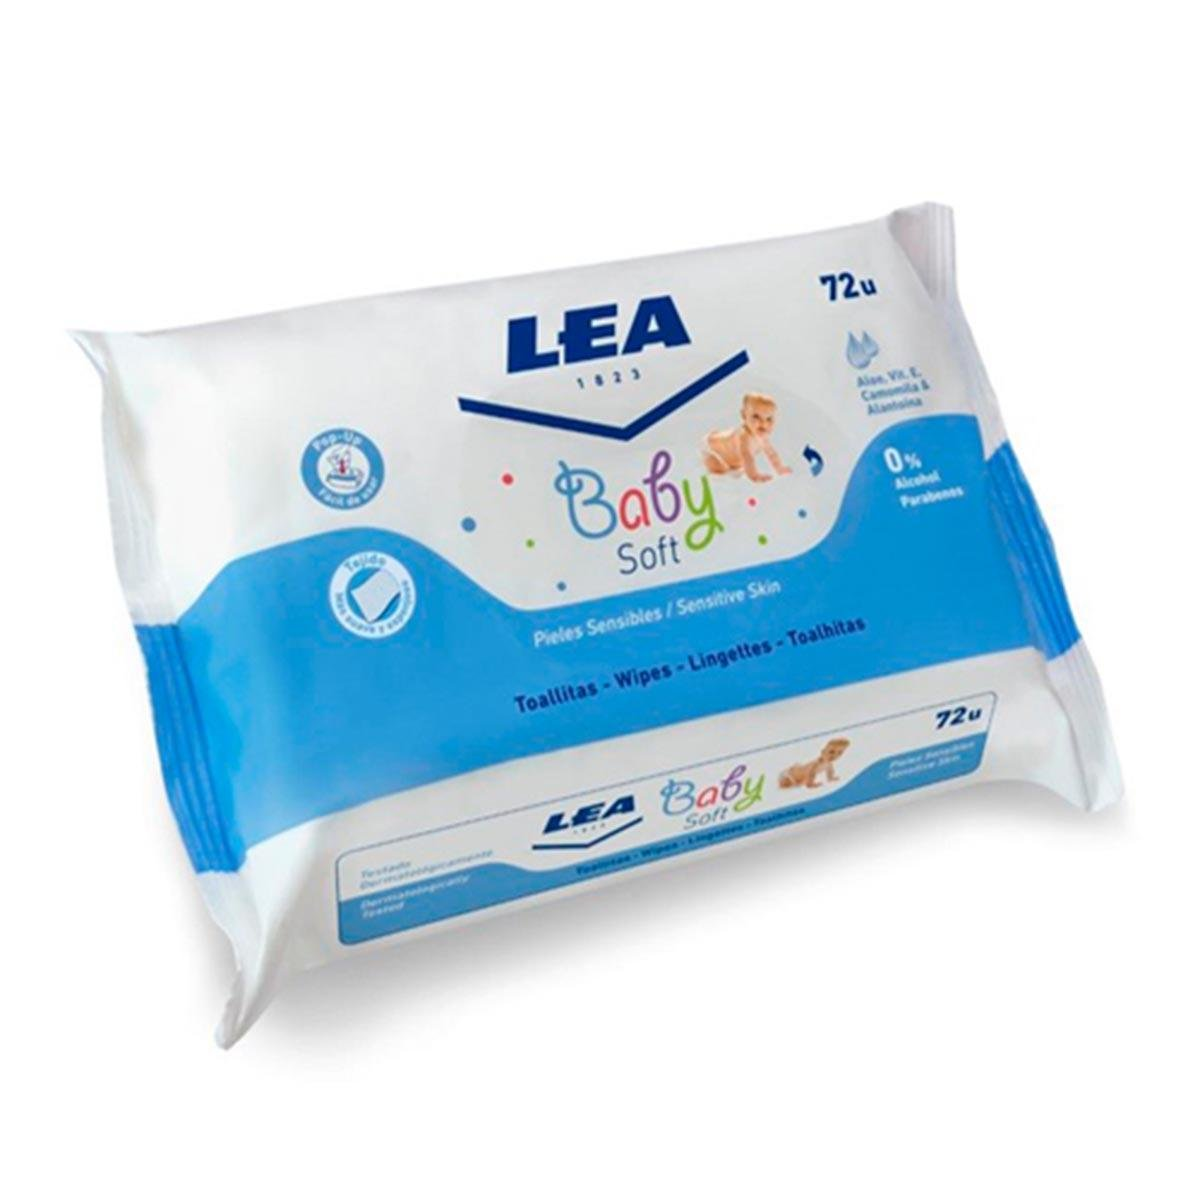 Amazon.com: Lea Baby Soft Toallitas Para Pieles Sensibles 72 Unidades: Beauty